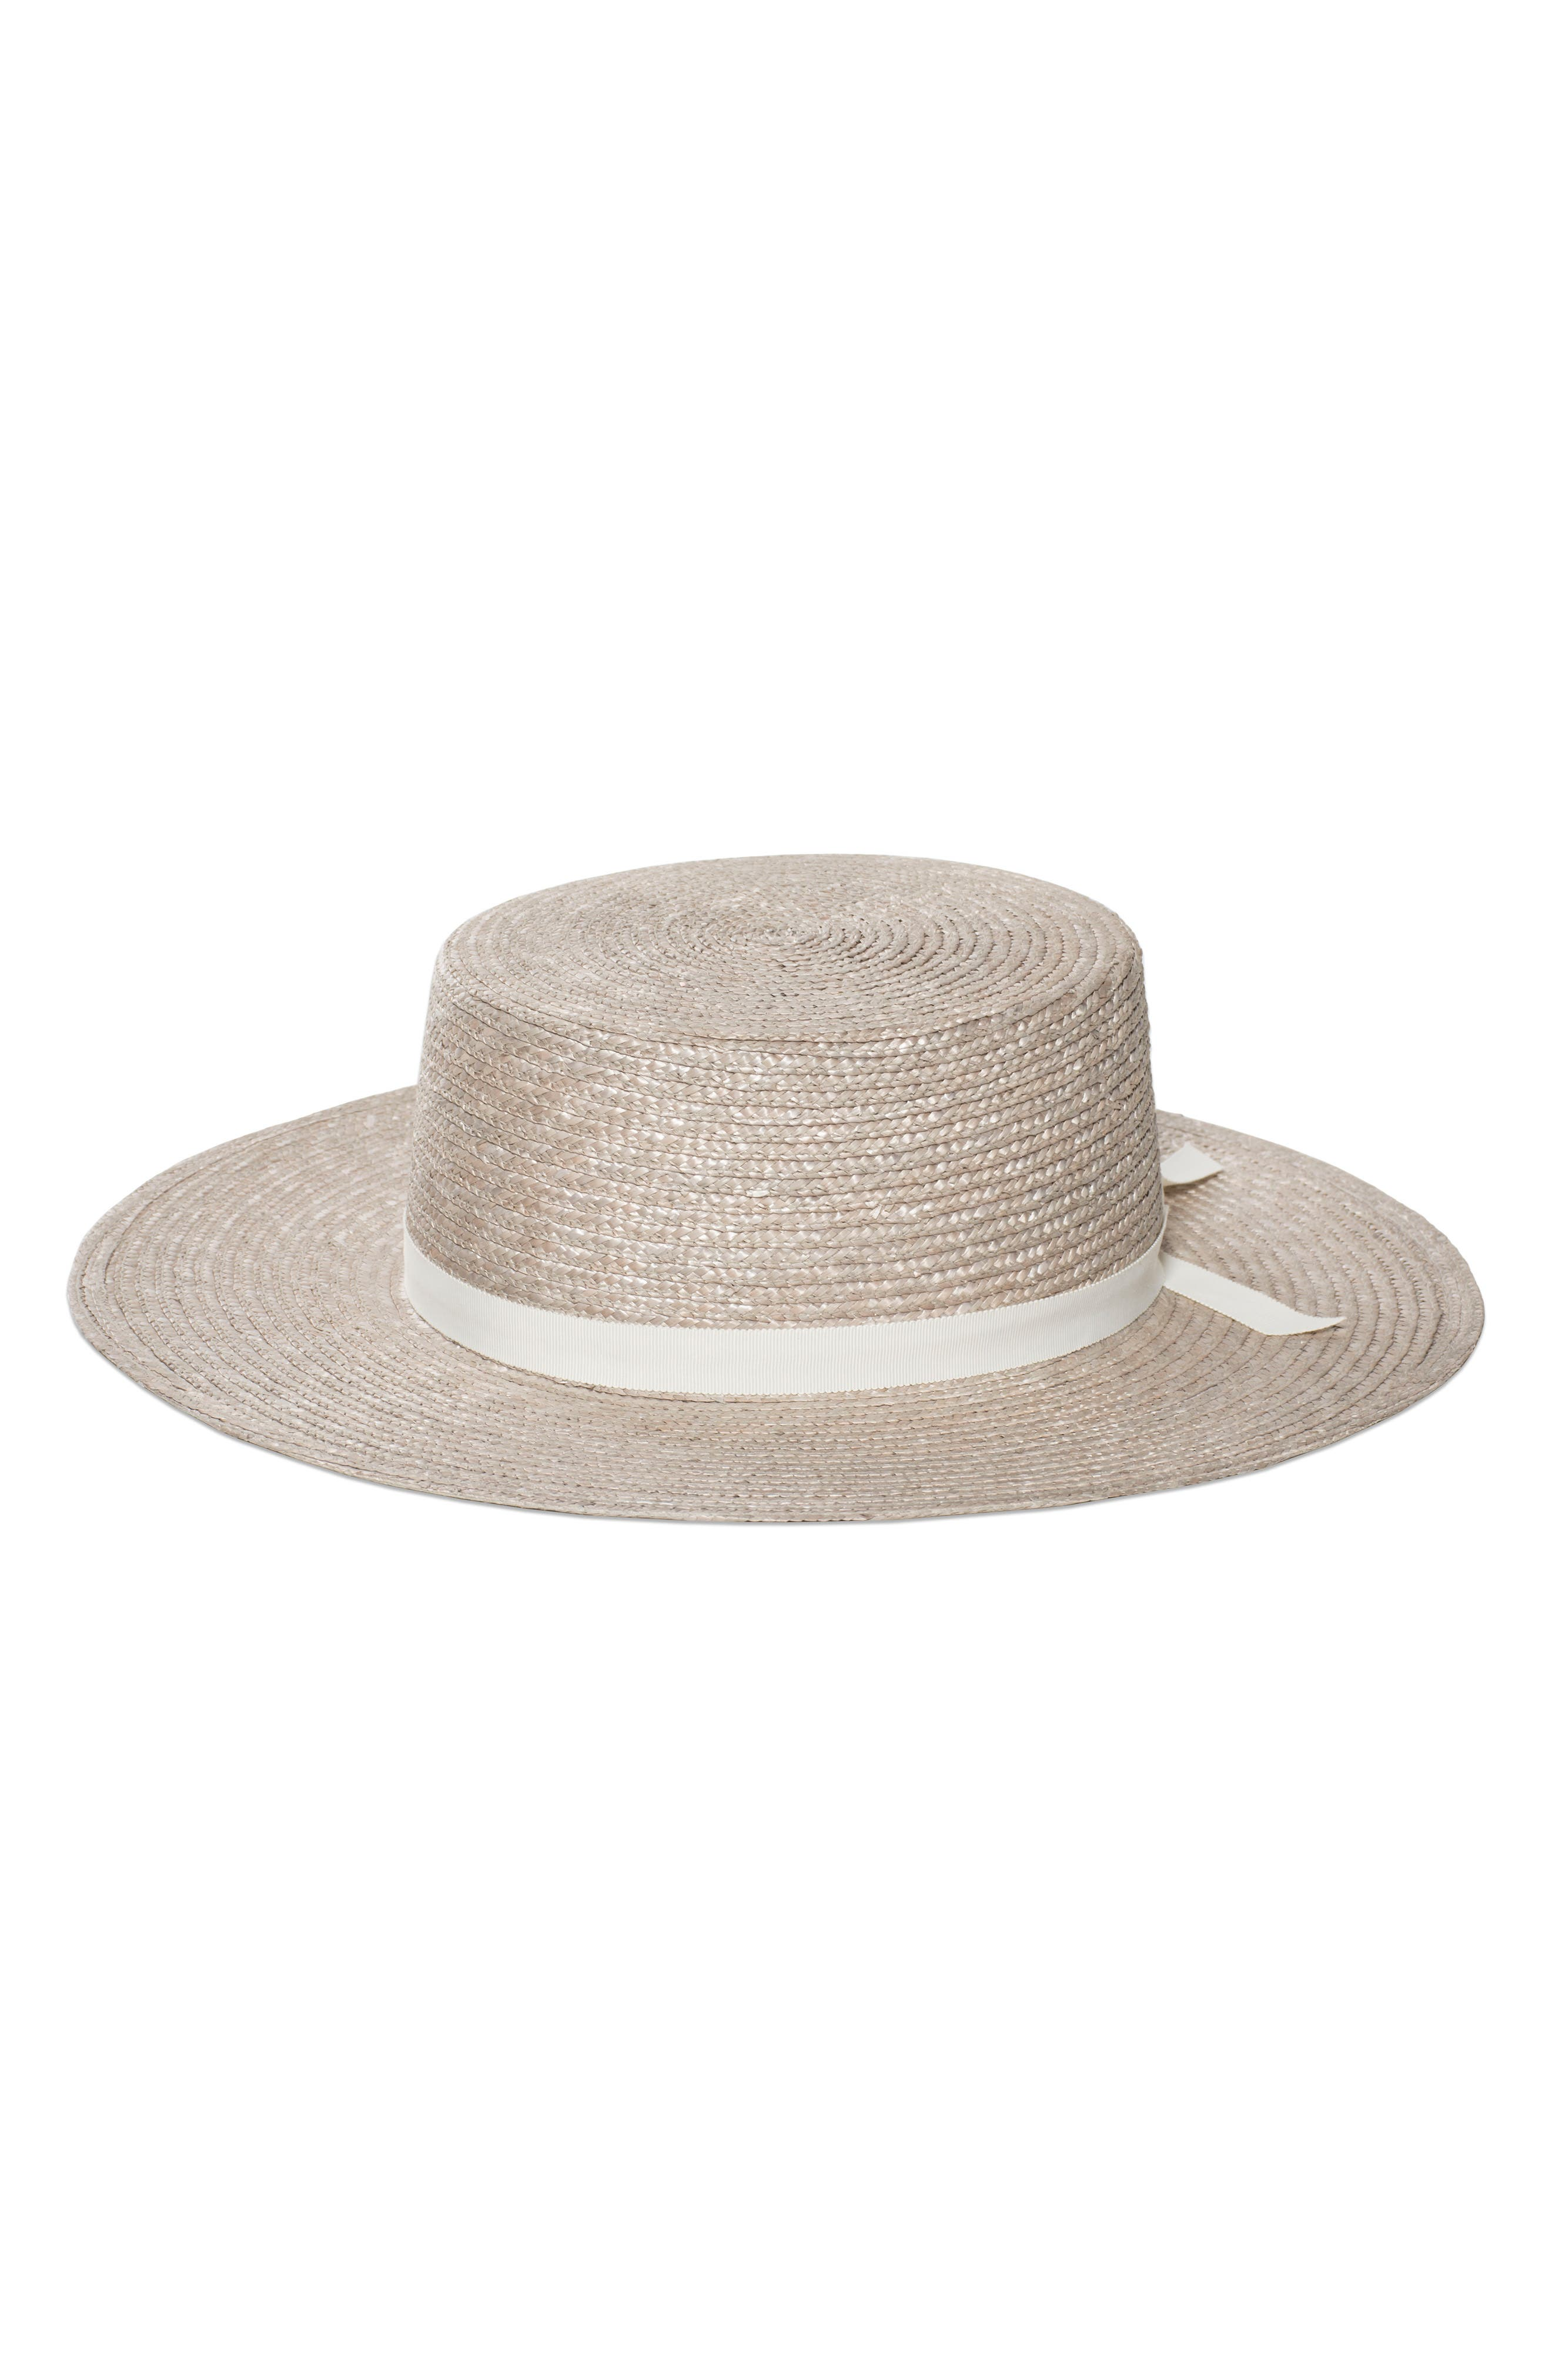 Alternate Image 1 Selected - Bijou Van Ness The Highland Straw Boater Hat